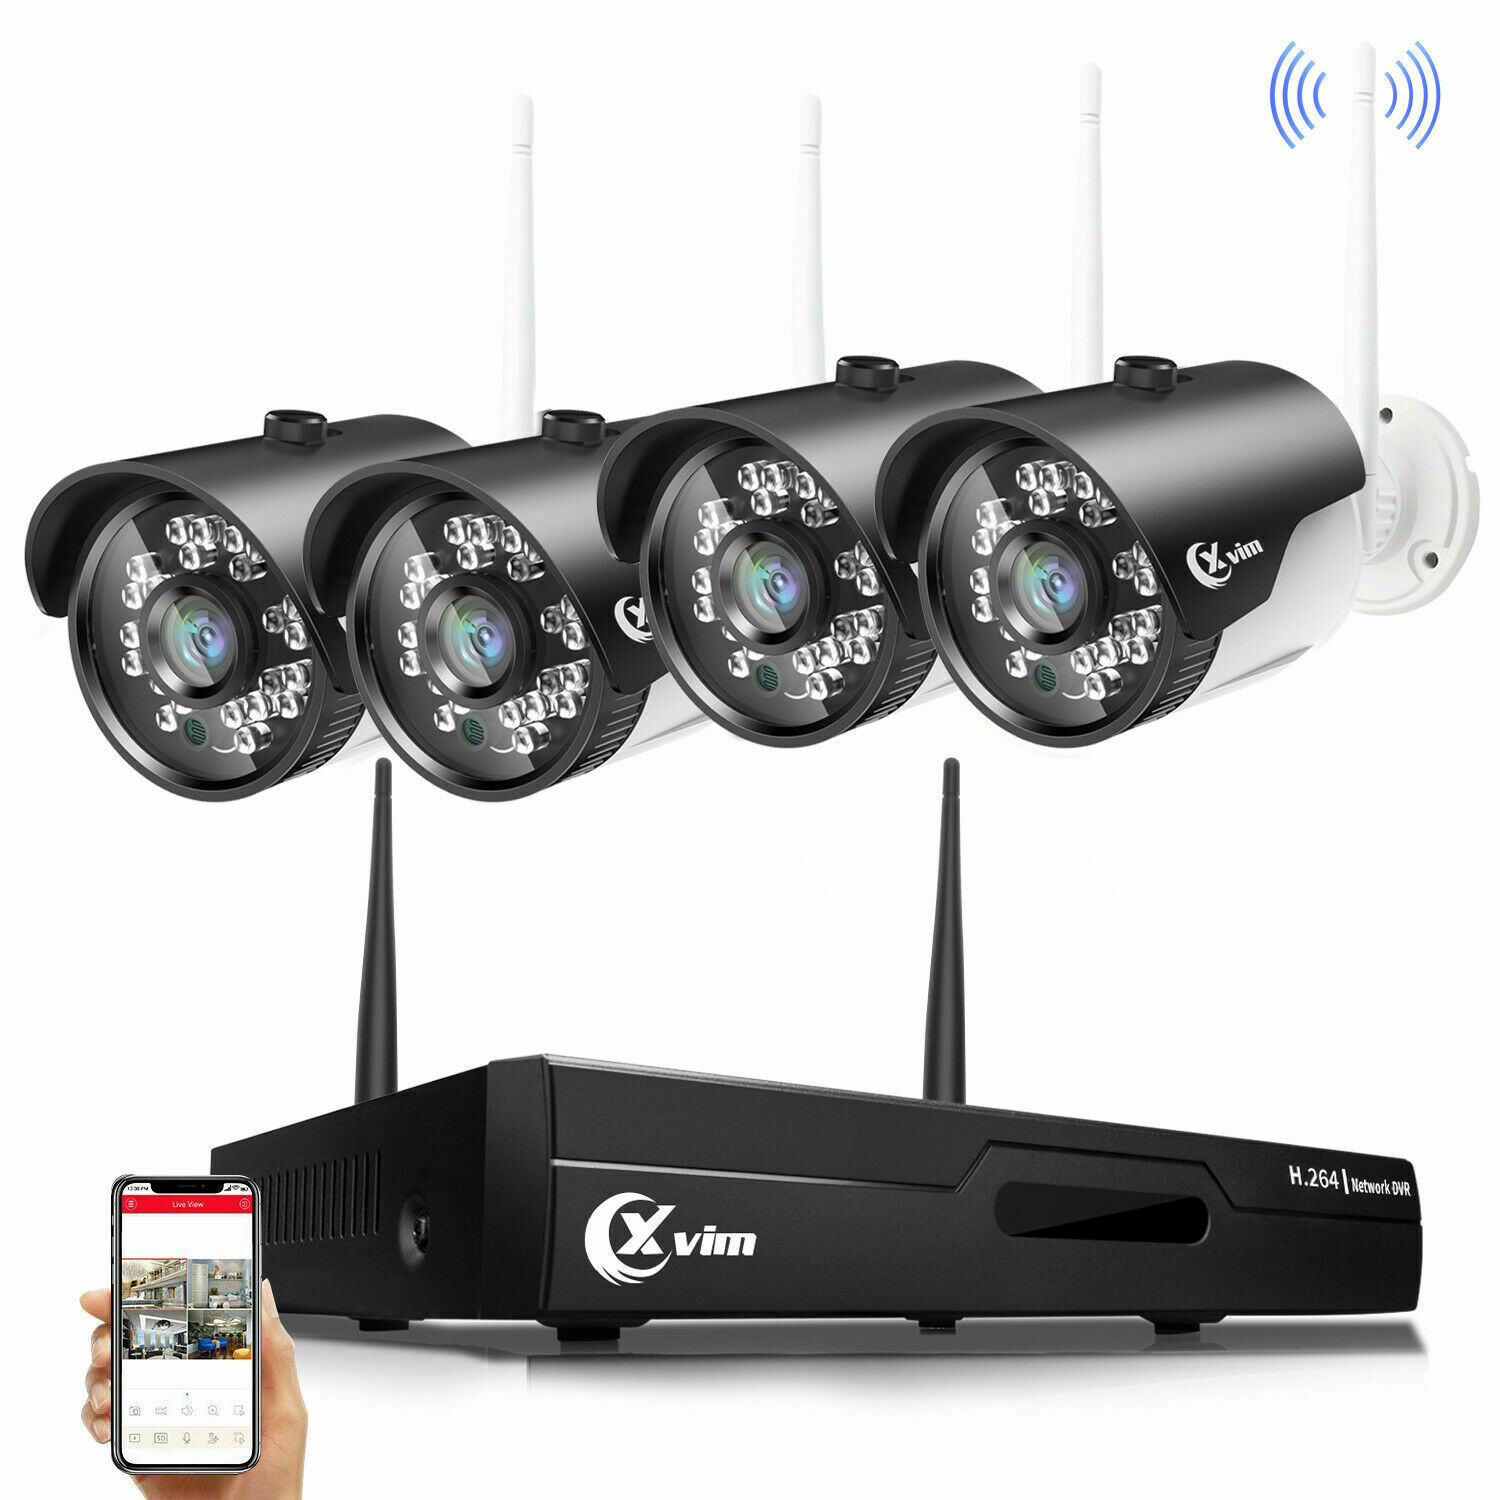 XVIM Wireless 1080P Security Camera System 4/8CH 1920TVL Wifi IP Camera CCTV NVR. Buy it now for 149.99